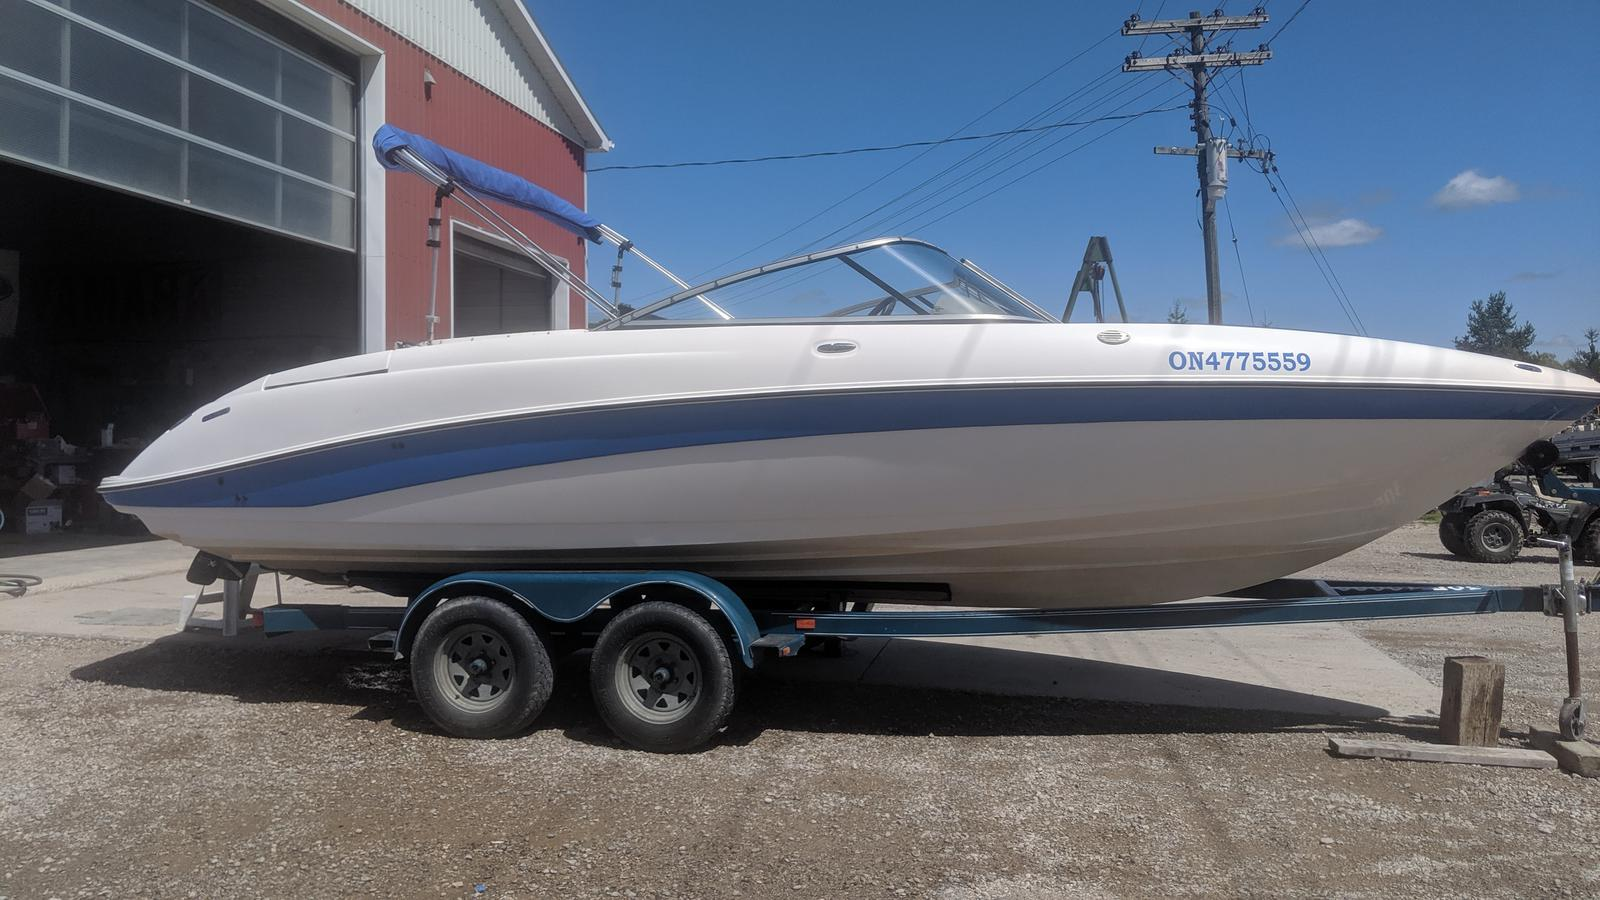 Inventory from Yamaha and Lund Southwest Marine Services